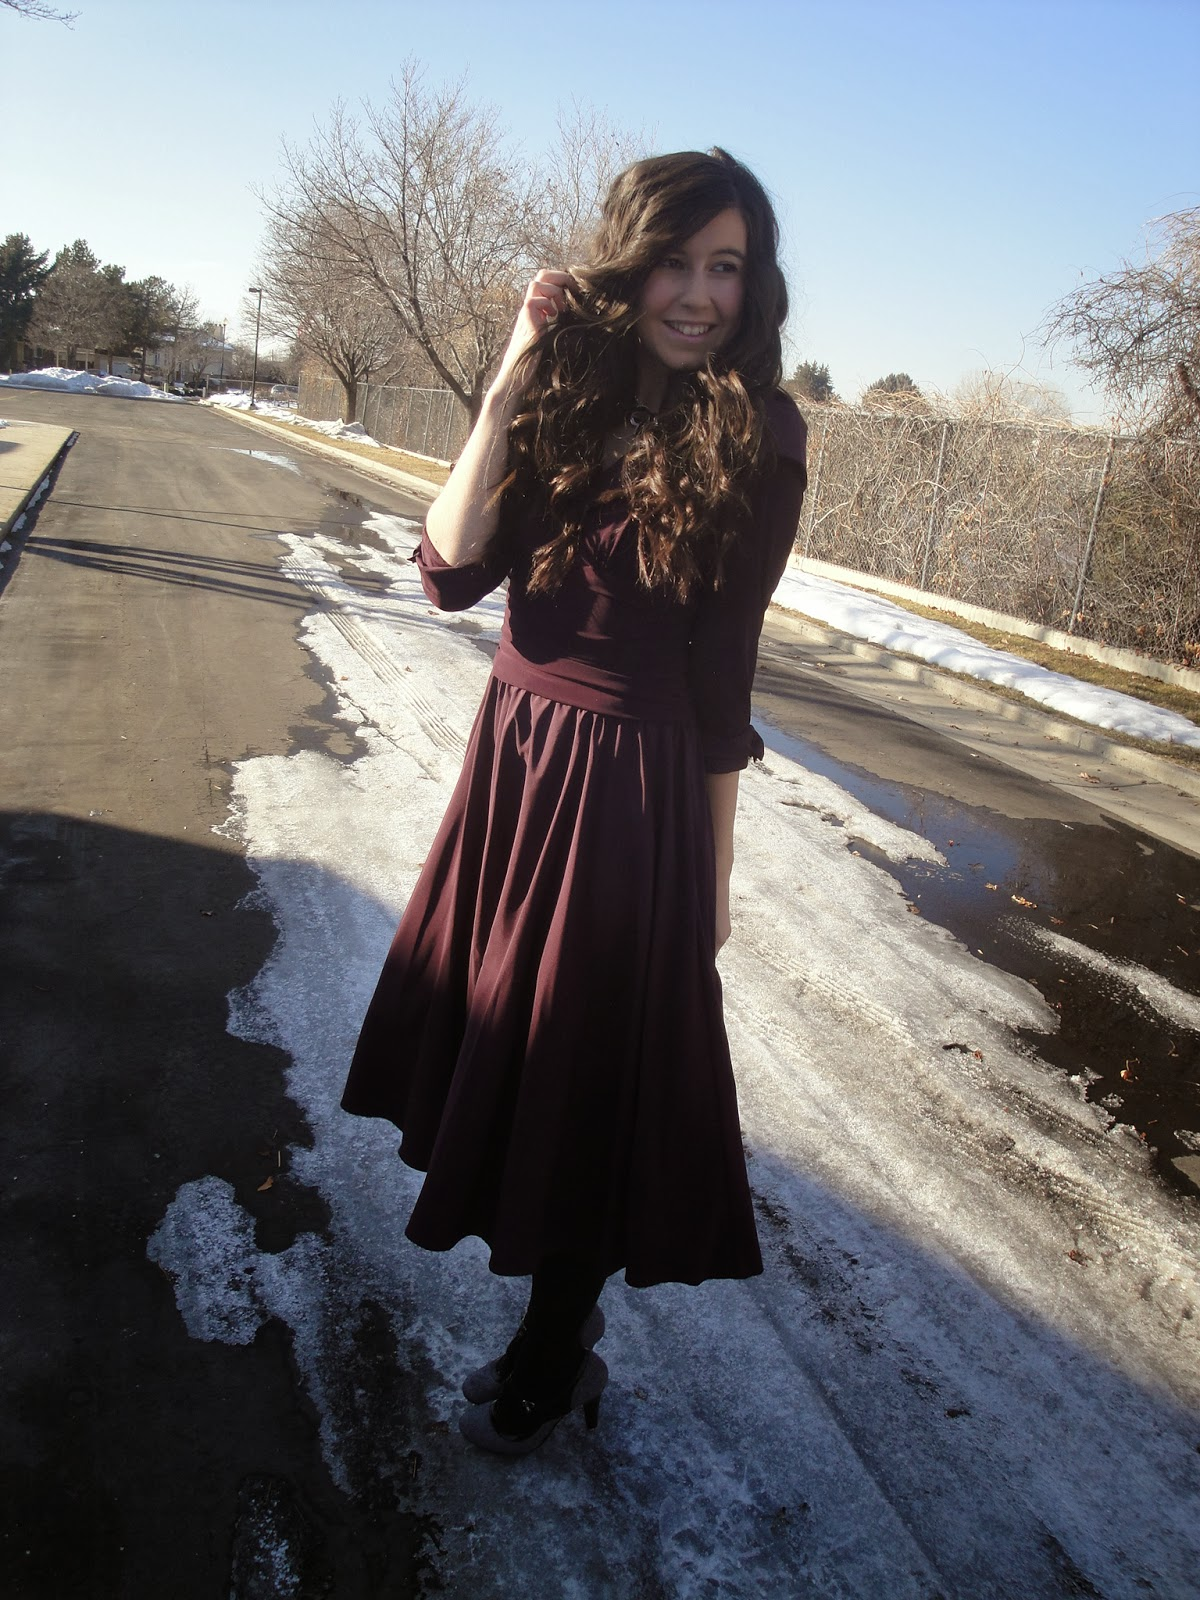 vampire diaries style, 1800's dress, Victorian dress, vampire diaries inspired, pretty, curly hair, bellami hair extensions, bellami hair, long dress, heels, cute dress outfit, outfit, Victorian attire,